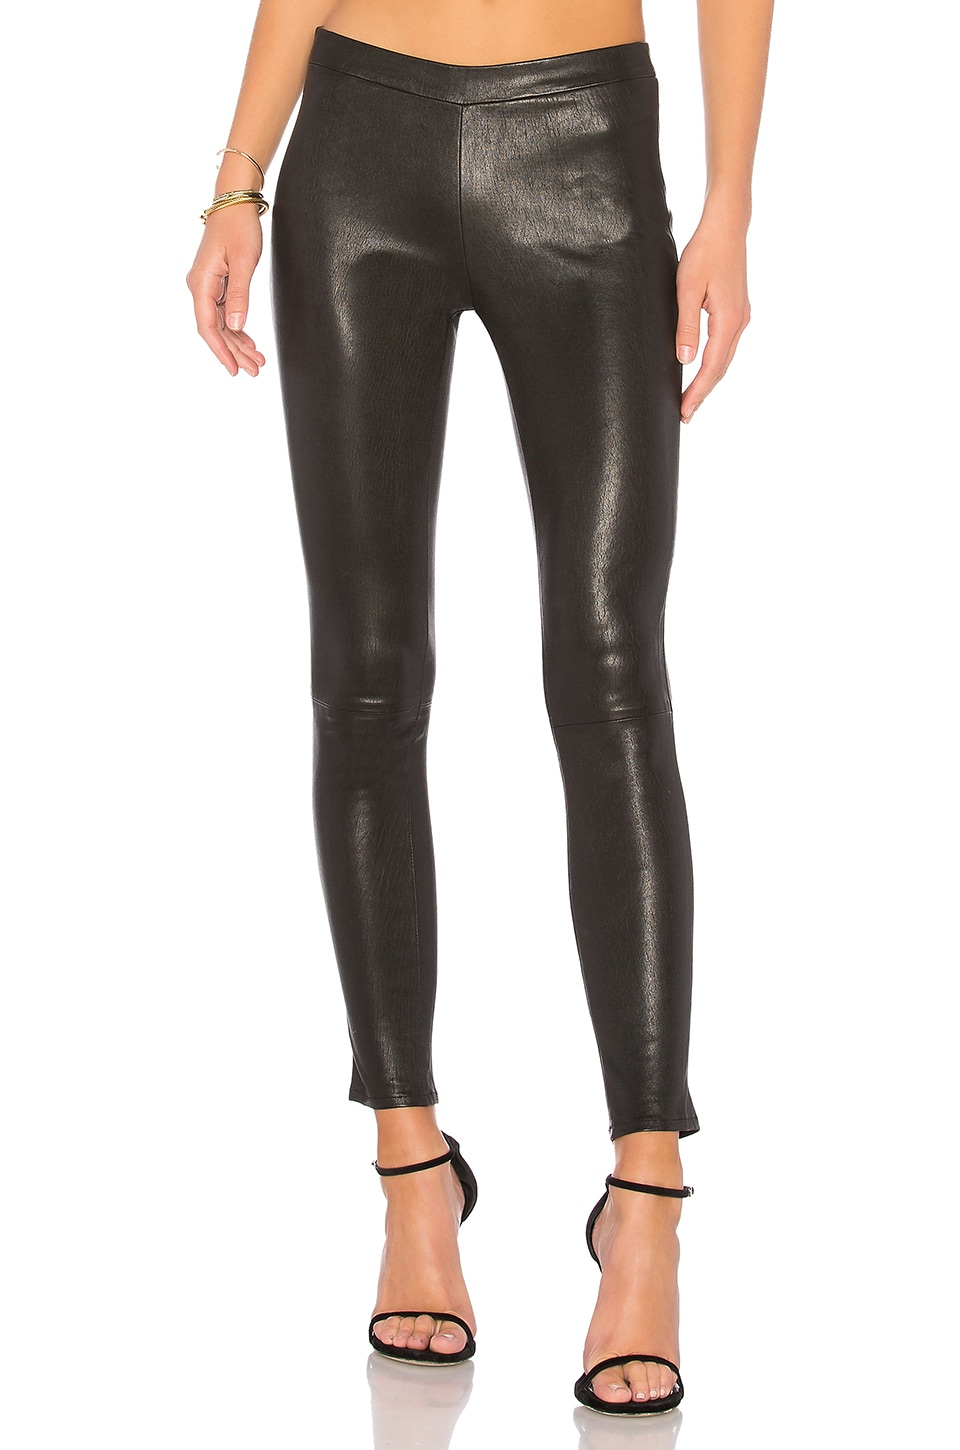 J Brand Lamb Leather Pull Up Legging in Black